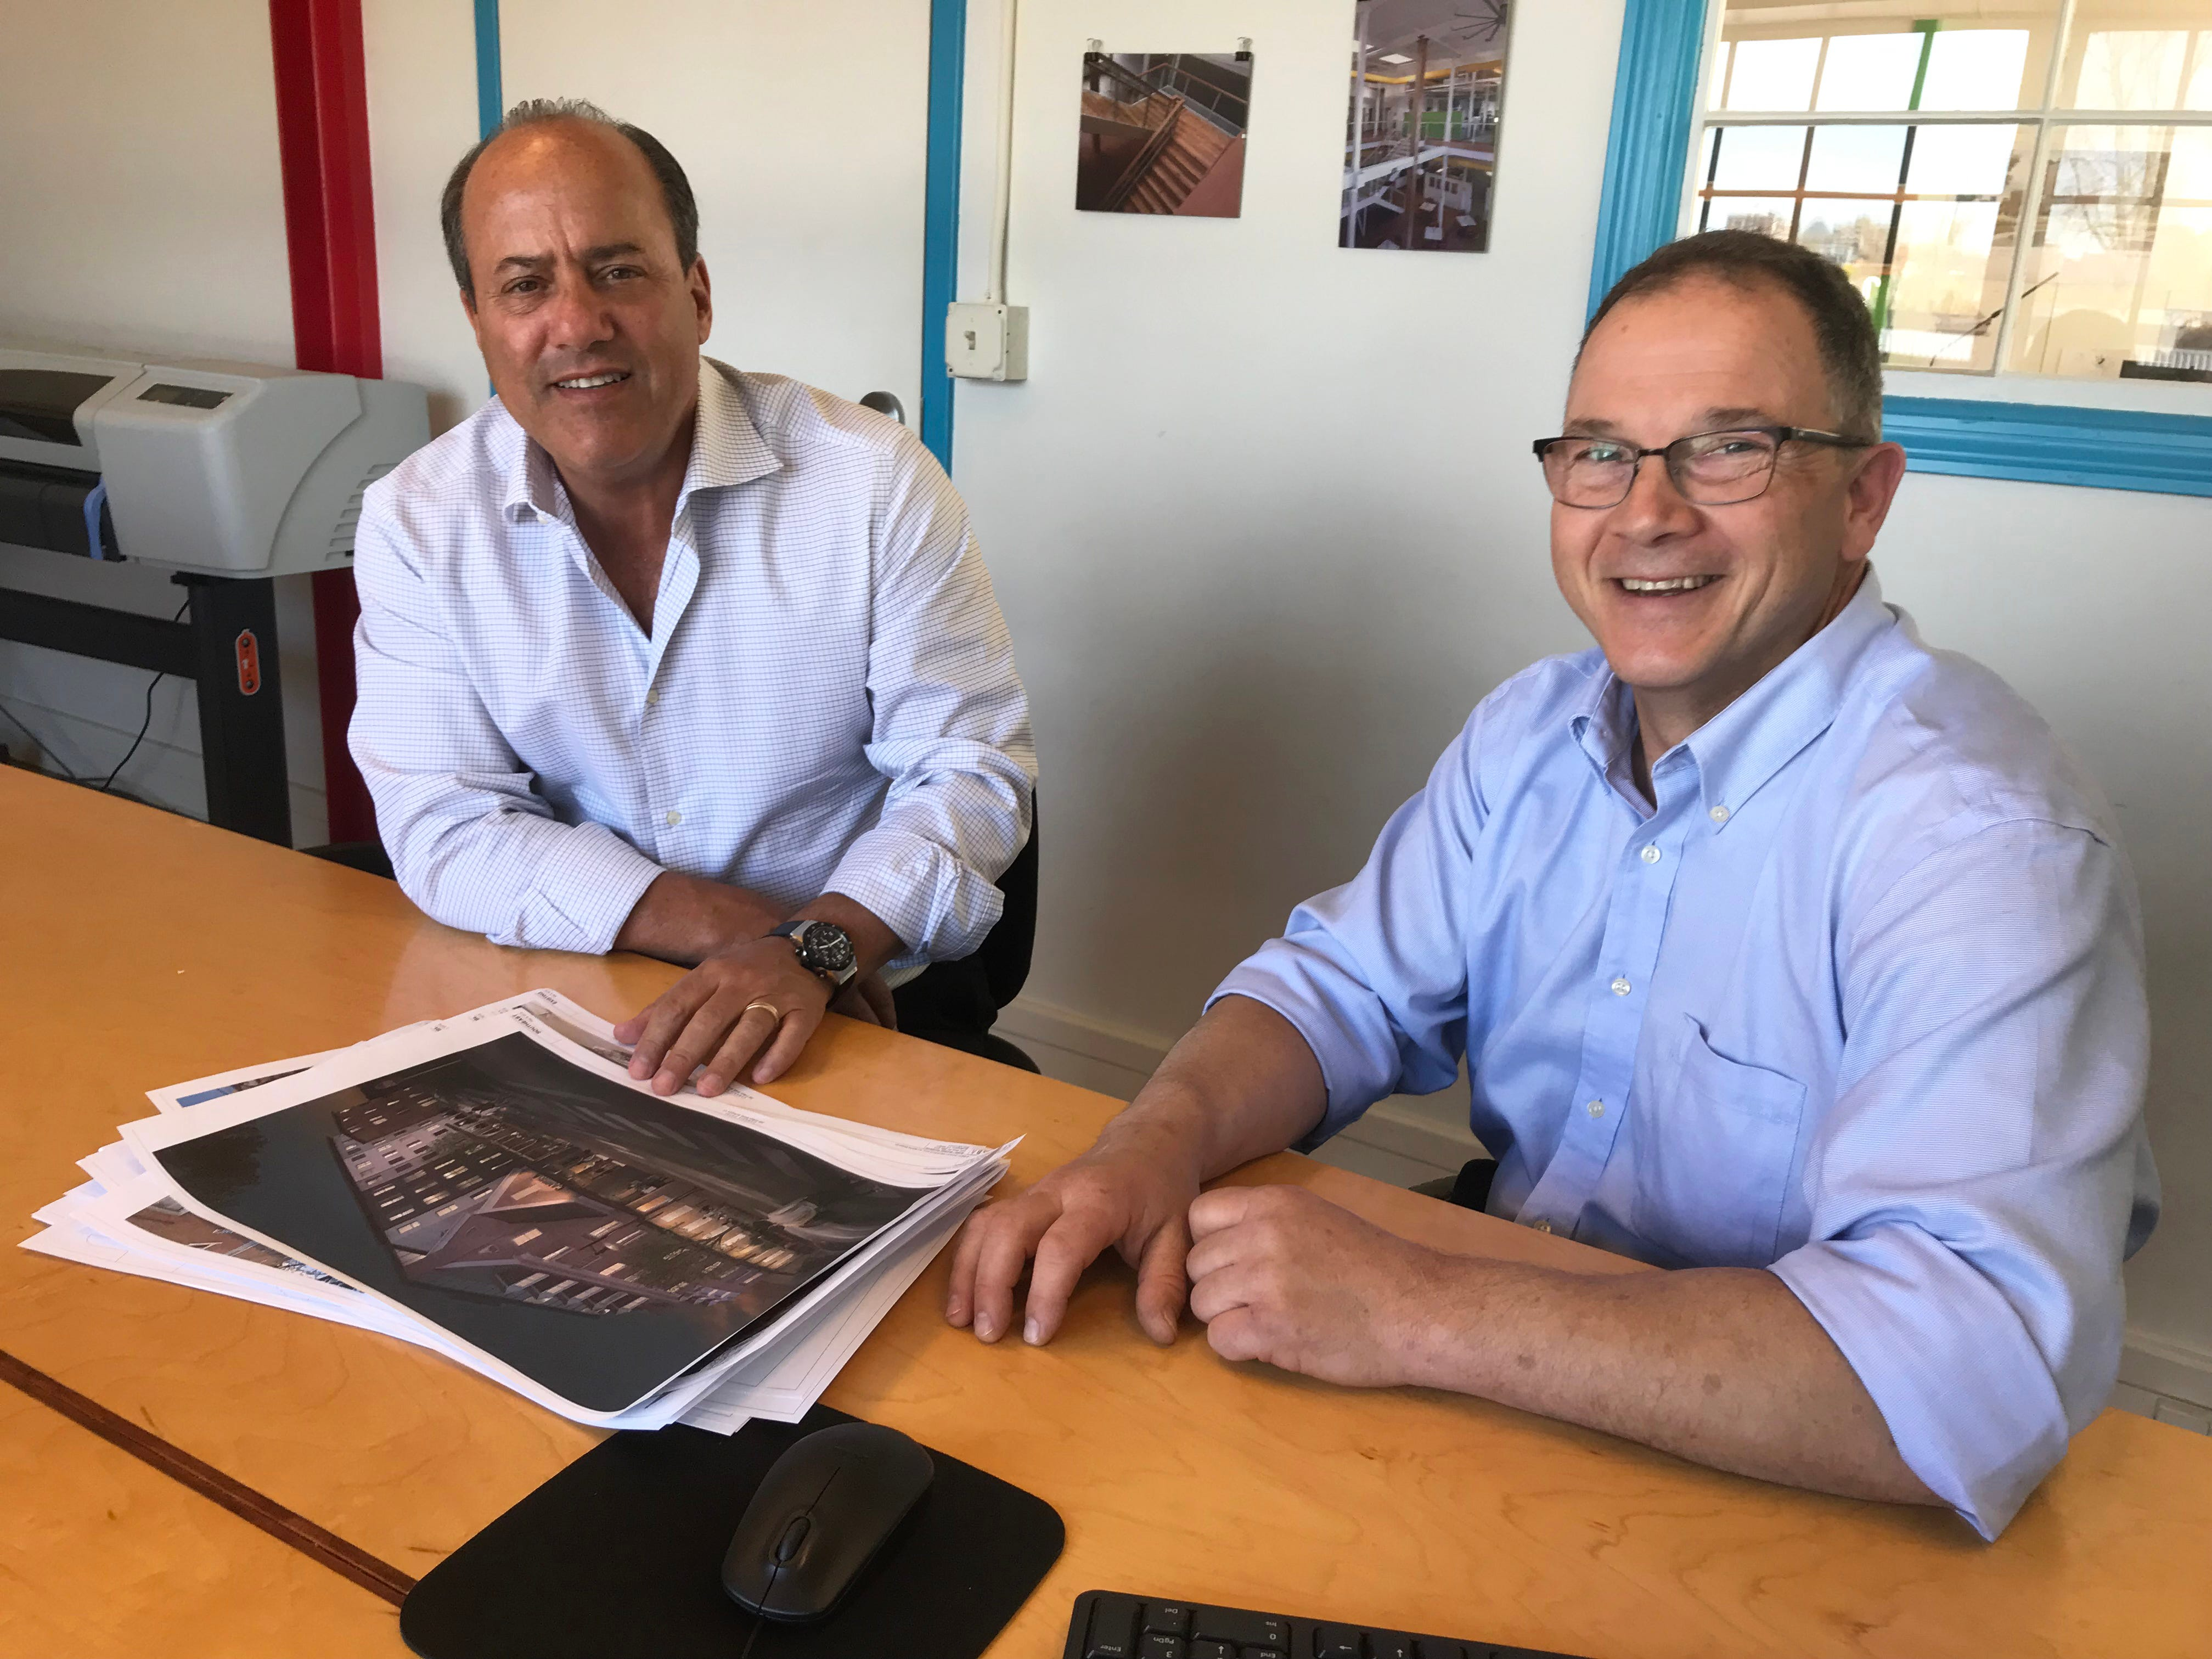 Burlington architect Cleary Buckley, right, discusses designs for a proposed hotel with developer Scott Silver at Buckley's office on Pine Street on Wednesday, May 8, 2019.